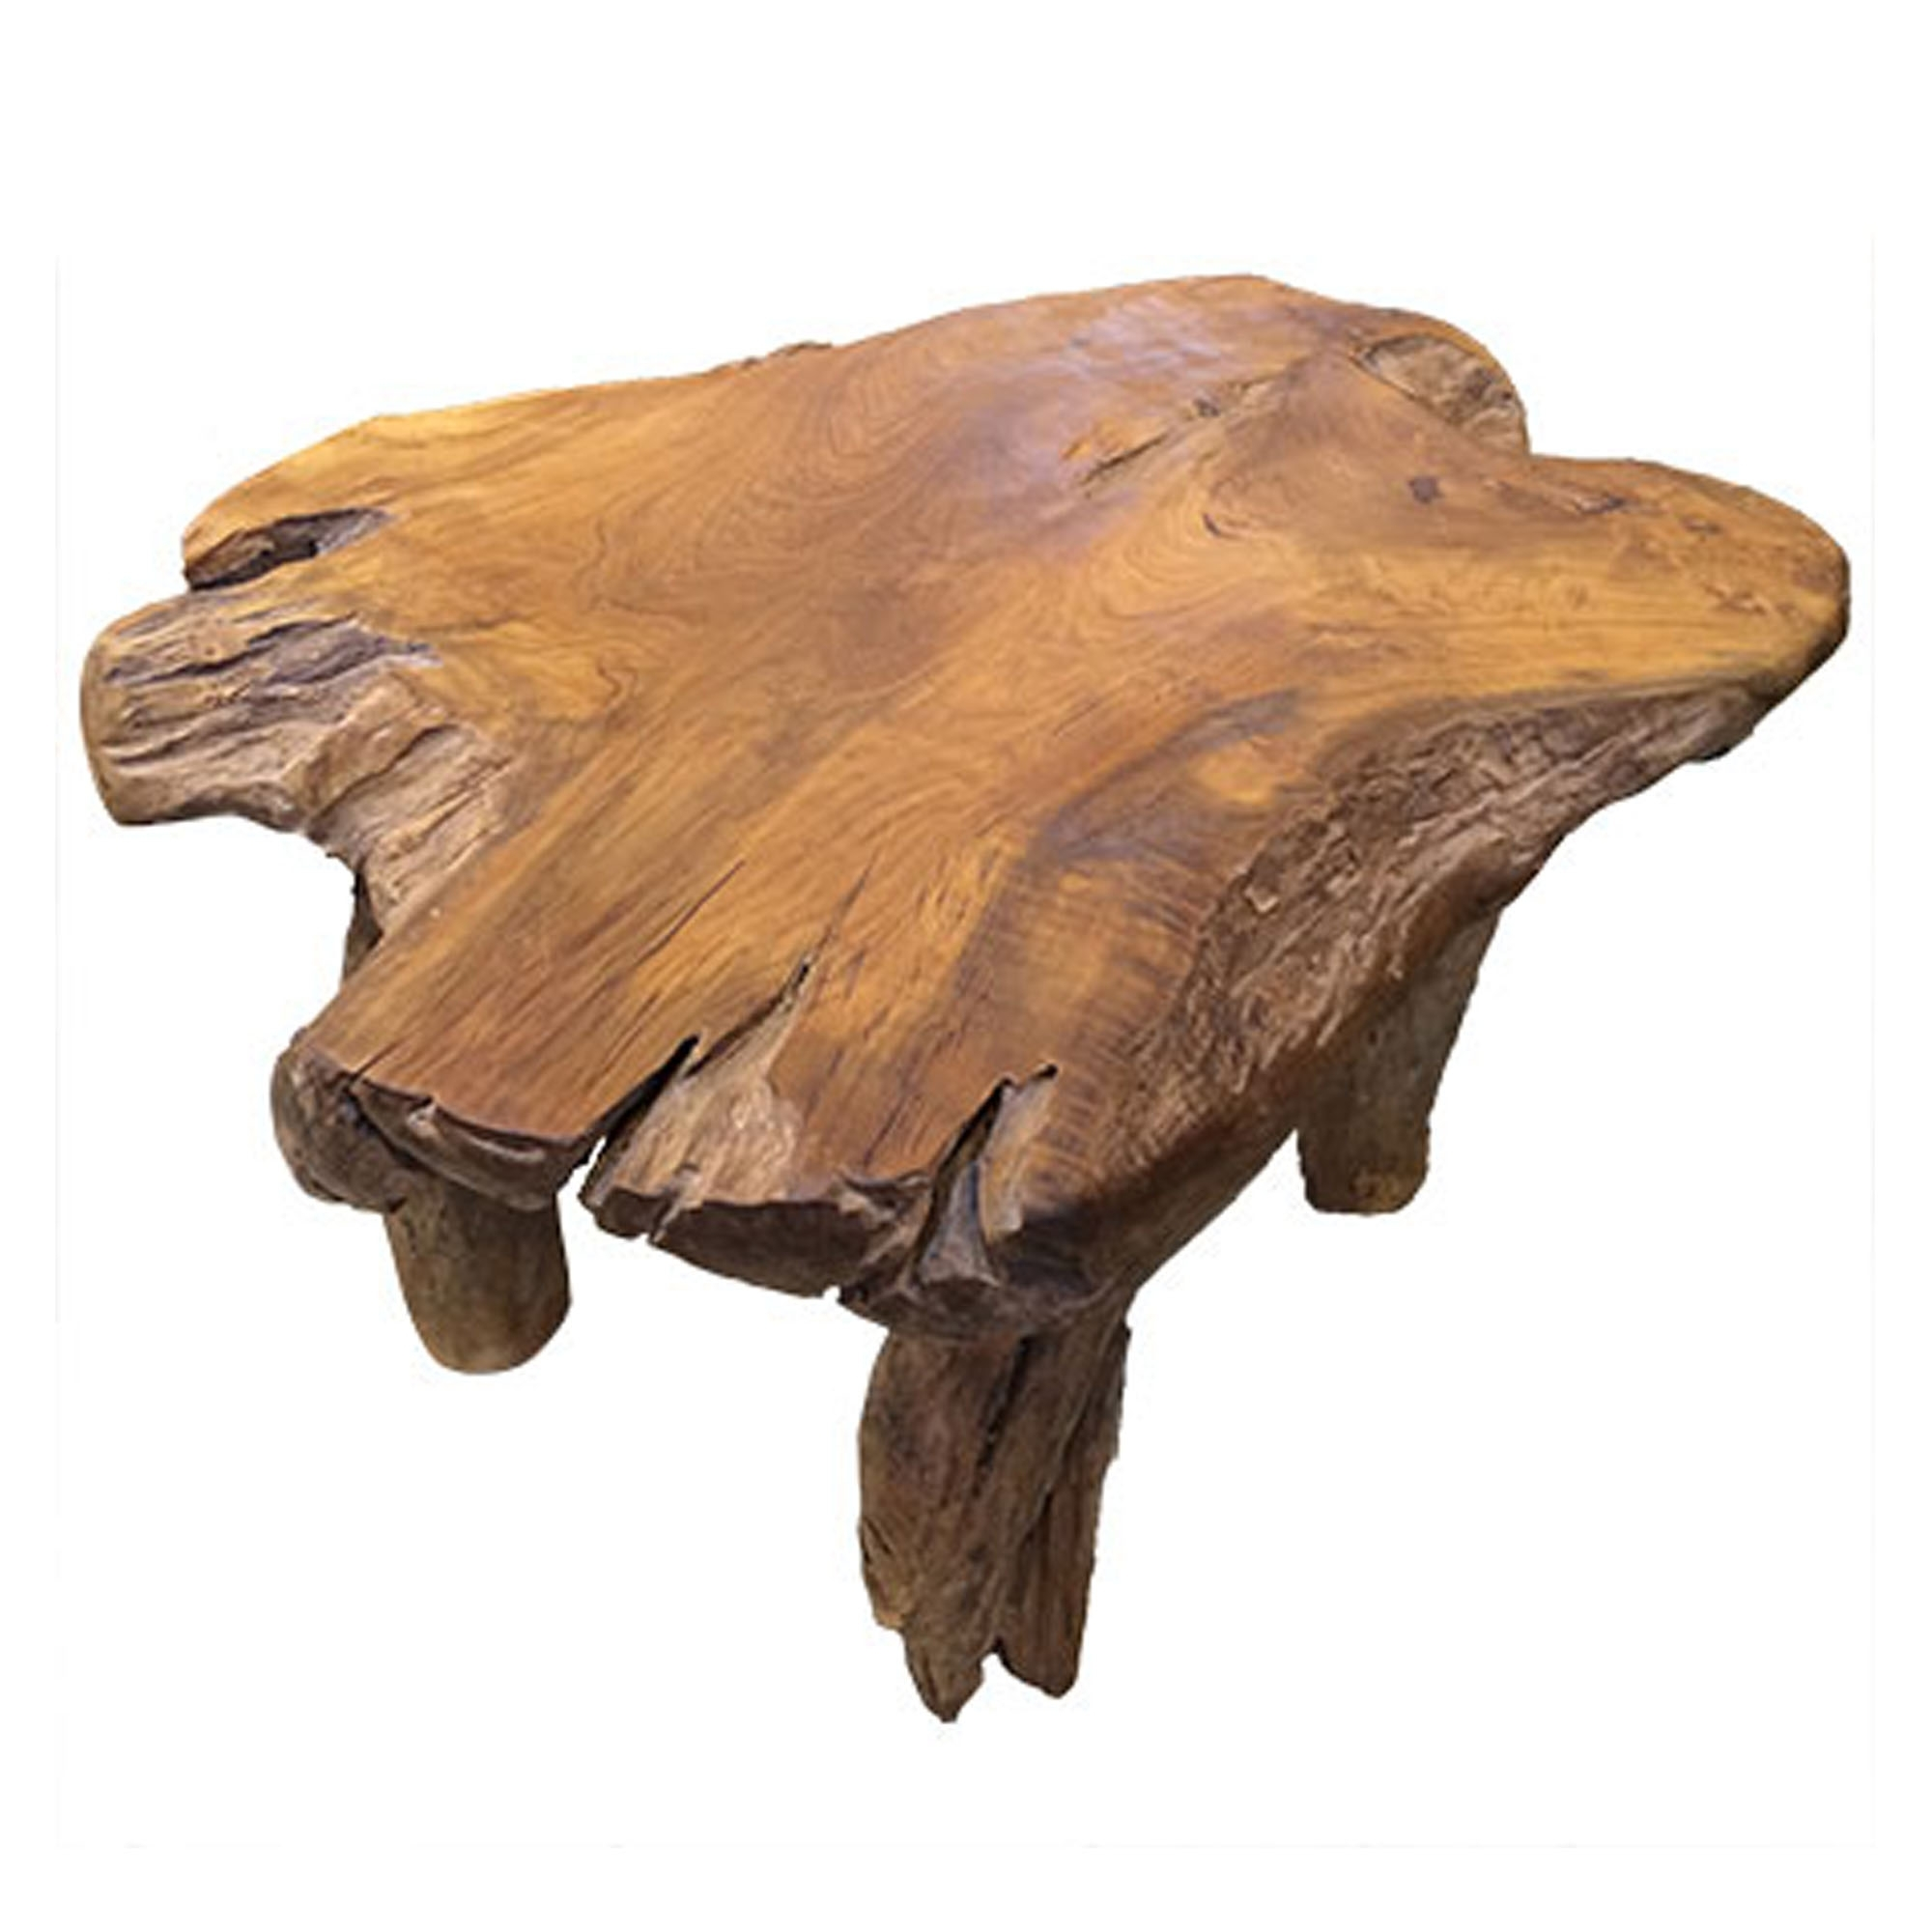 Teak Root Coffee Table Rustic Contemporary Furniture